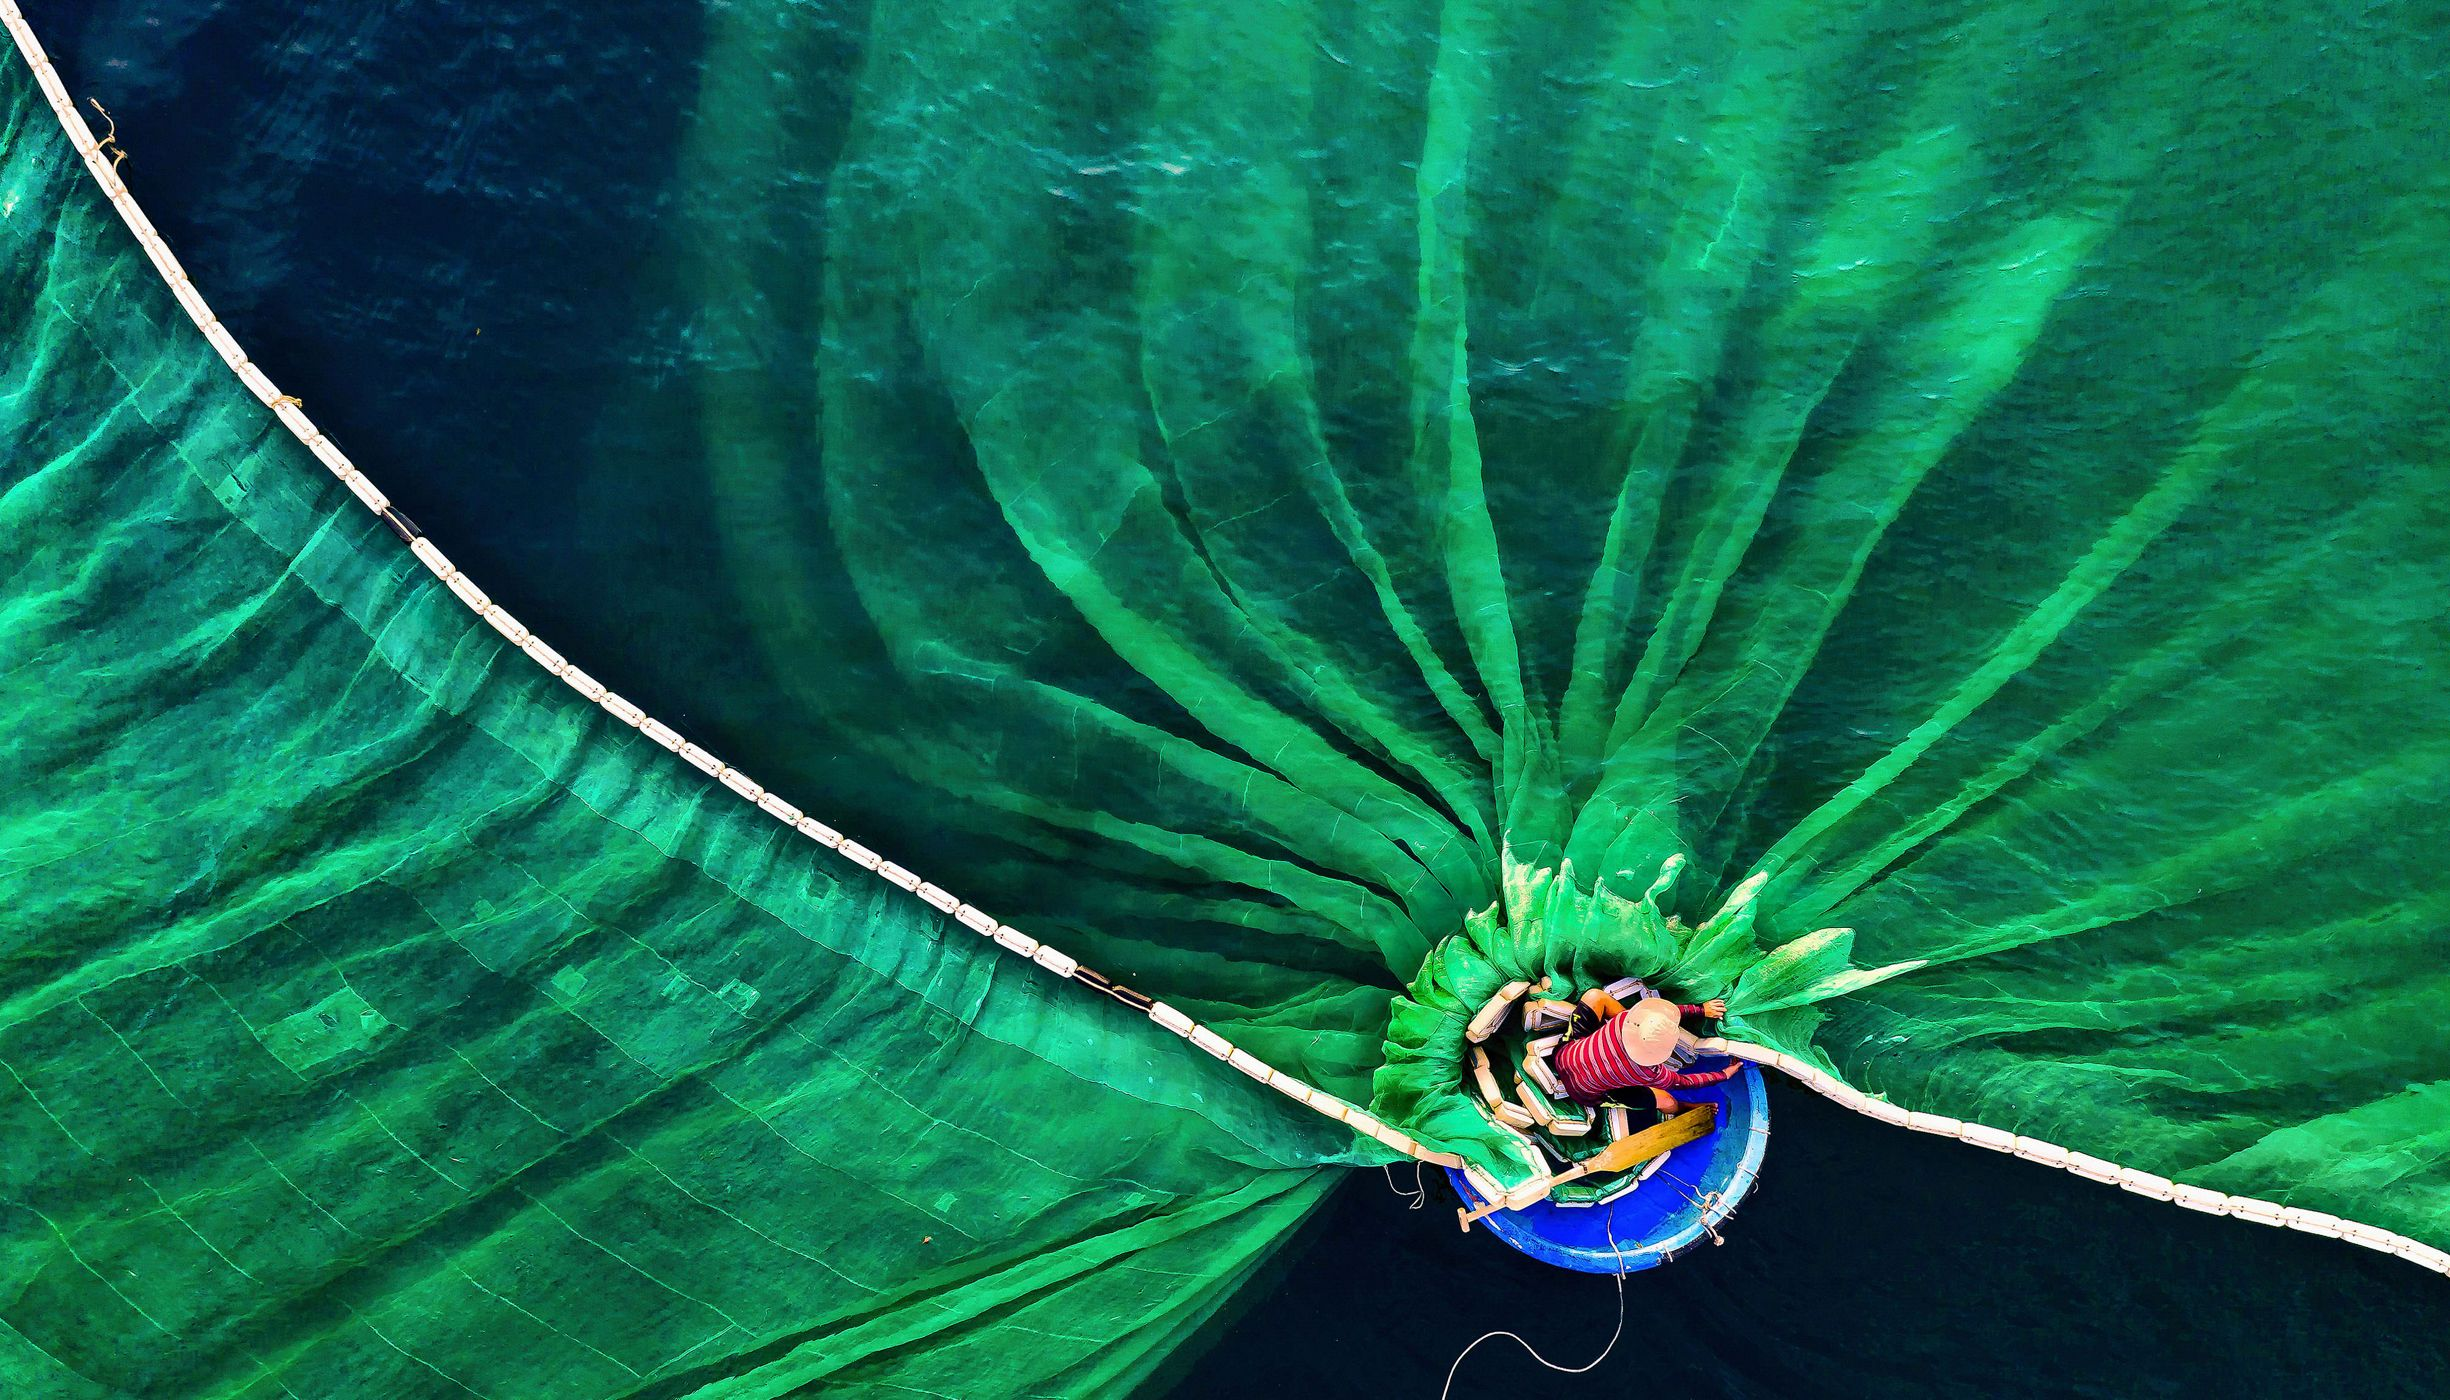 Overhead view of a man on a boat casting a wide, green net.